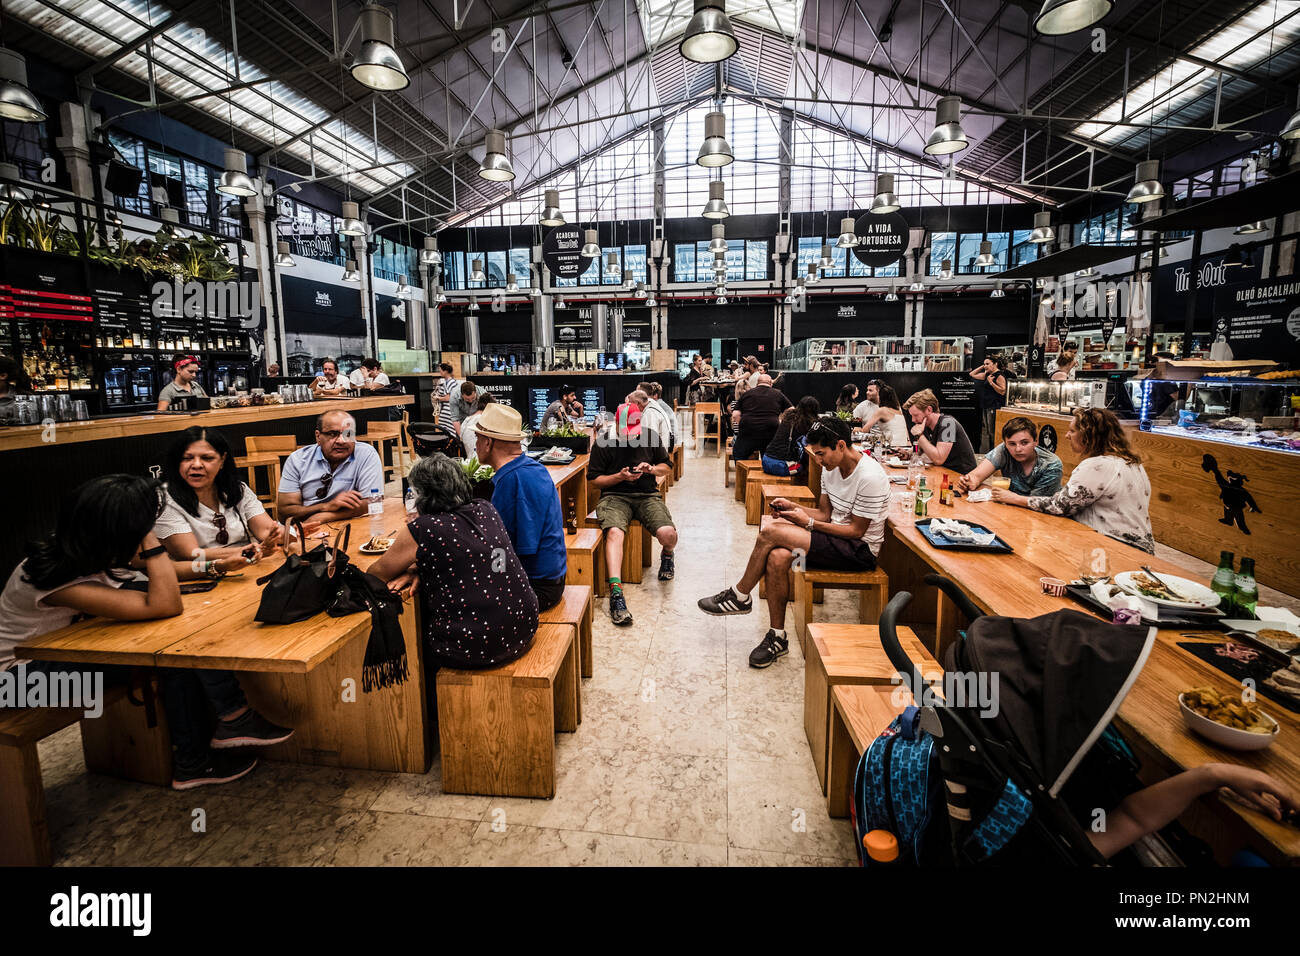 Time Out Market is a food hall located in Mercado da Ribeira at Cais do  Sodre in Lisbon 218430da27805